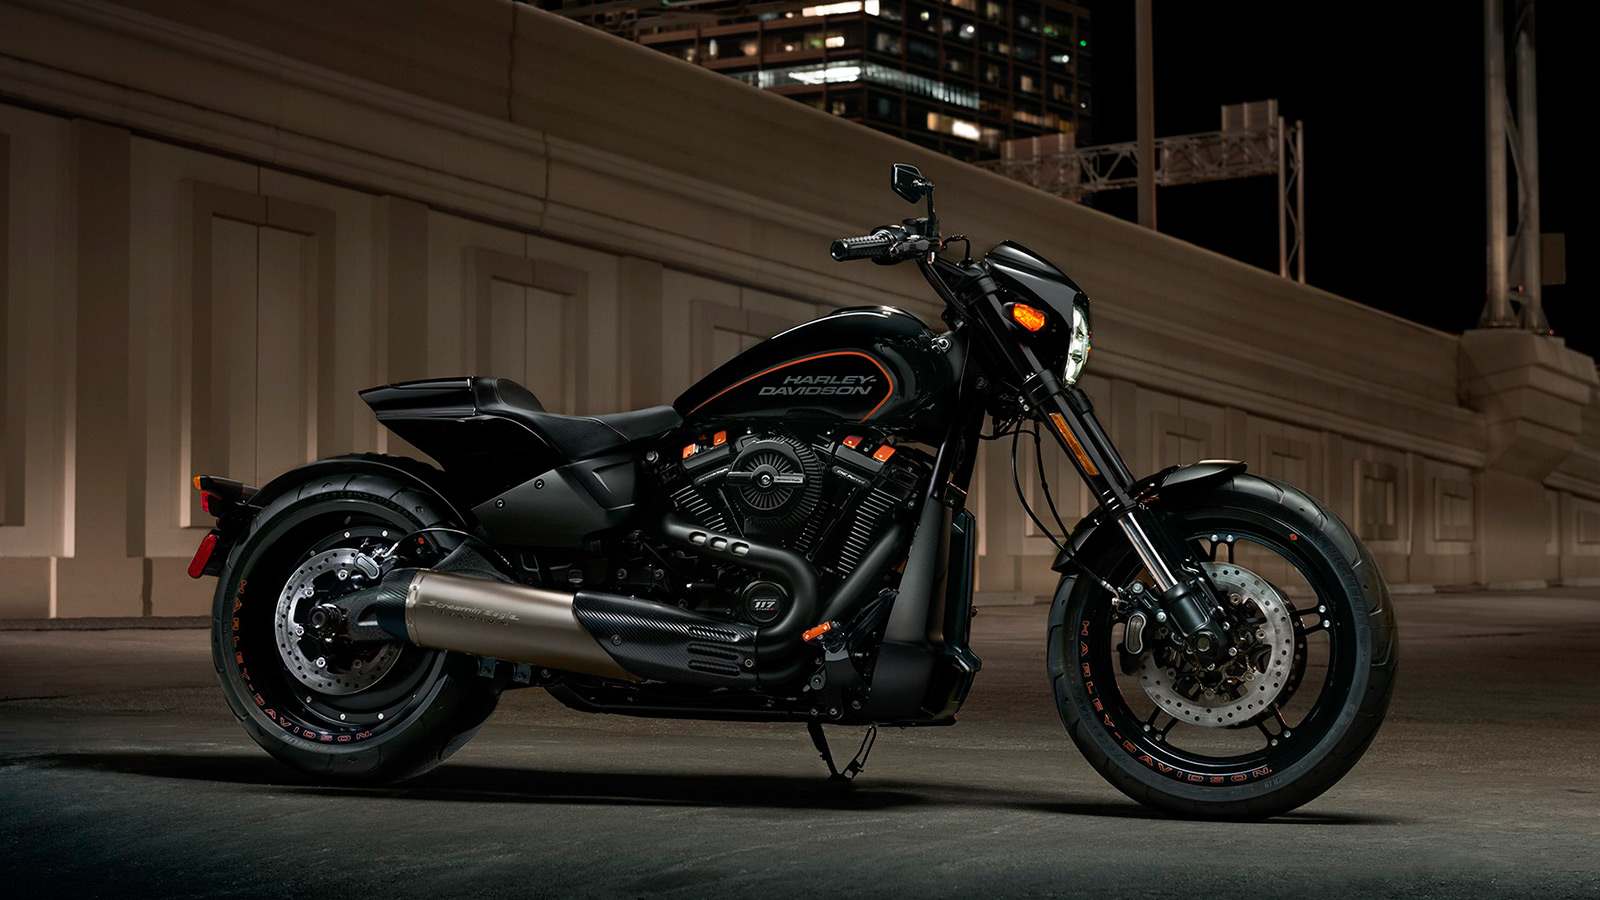 Harley Davidson Fxdr 114 Coming For 2019 New Performance: Harley Davidson Softail FXDR 114